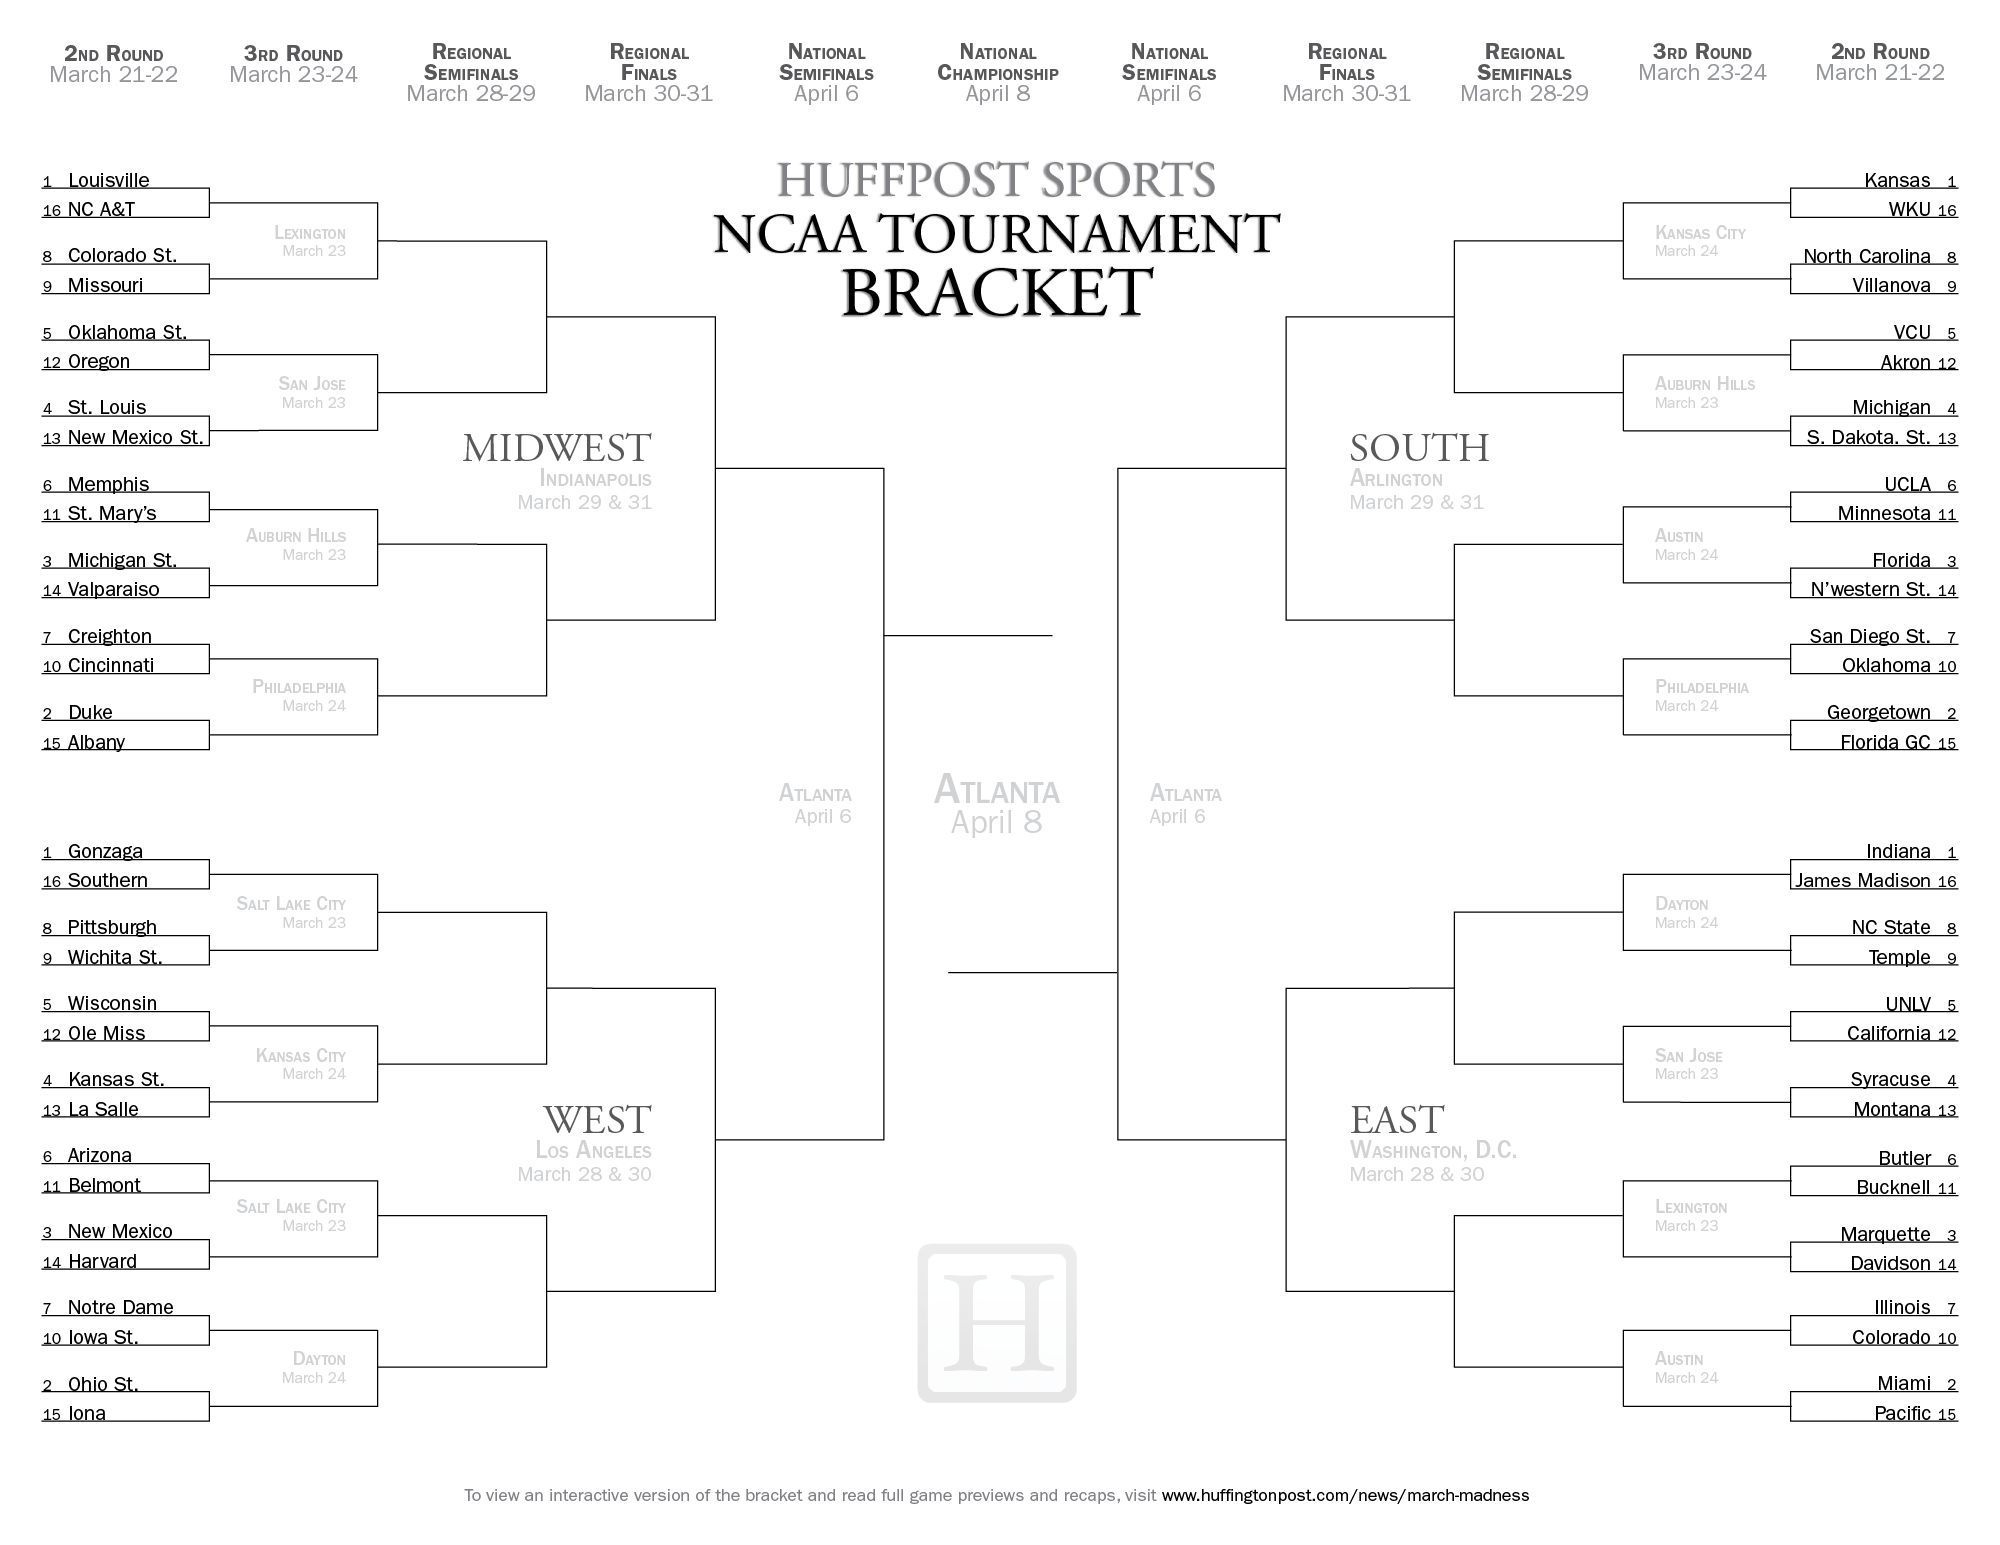 Which team do you think is going to win the 2014 NCAA March Madness?